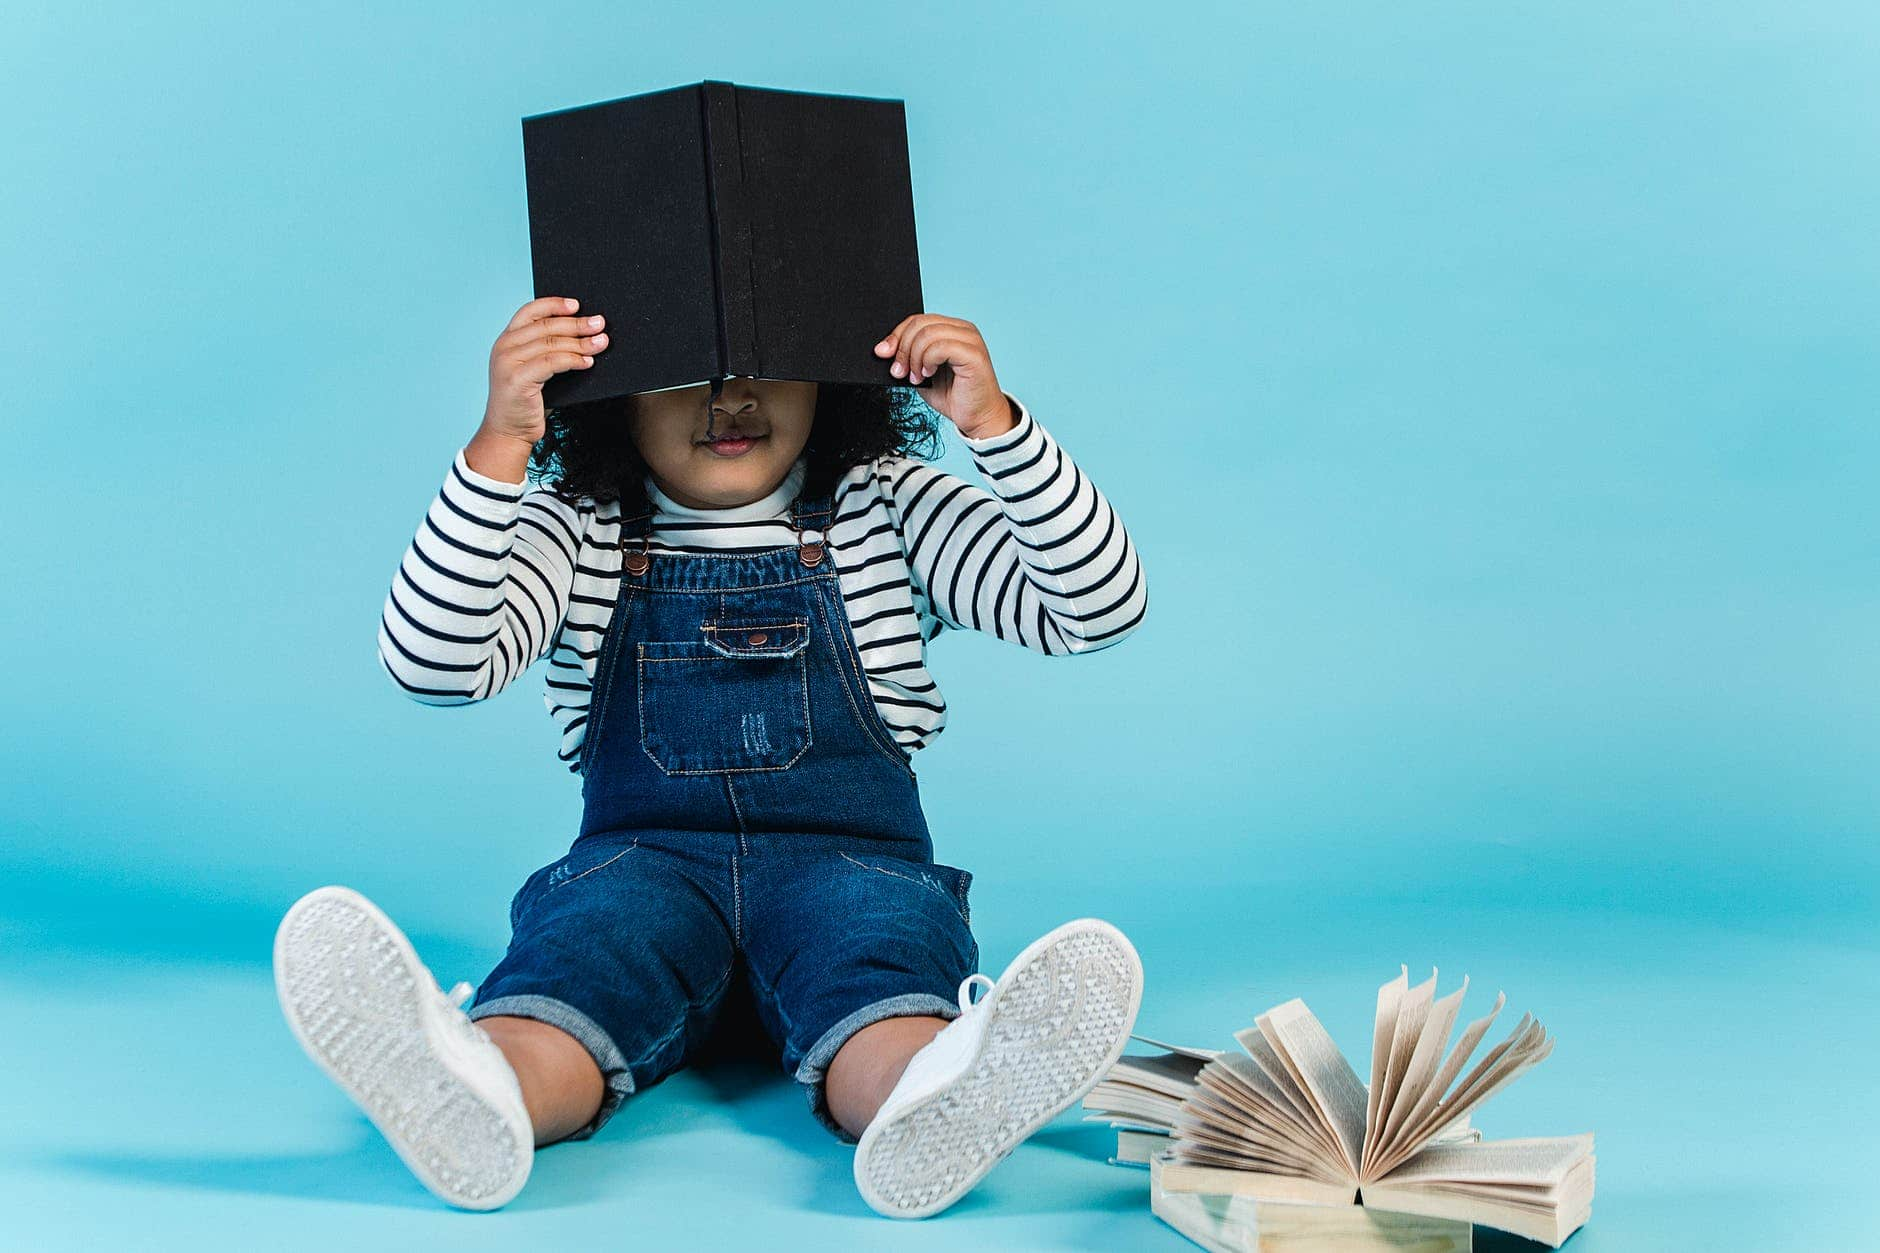 small black girl sitting on floor with books in studio